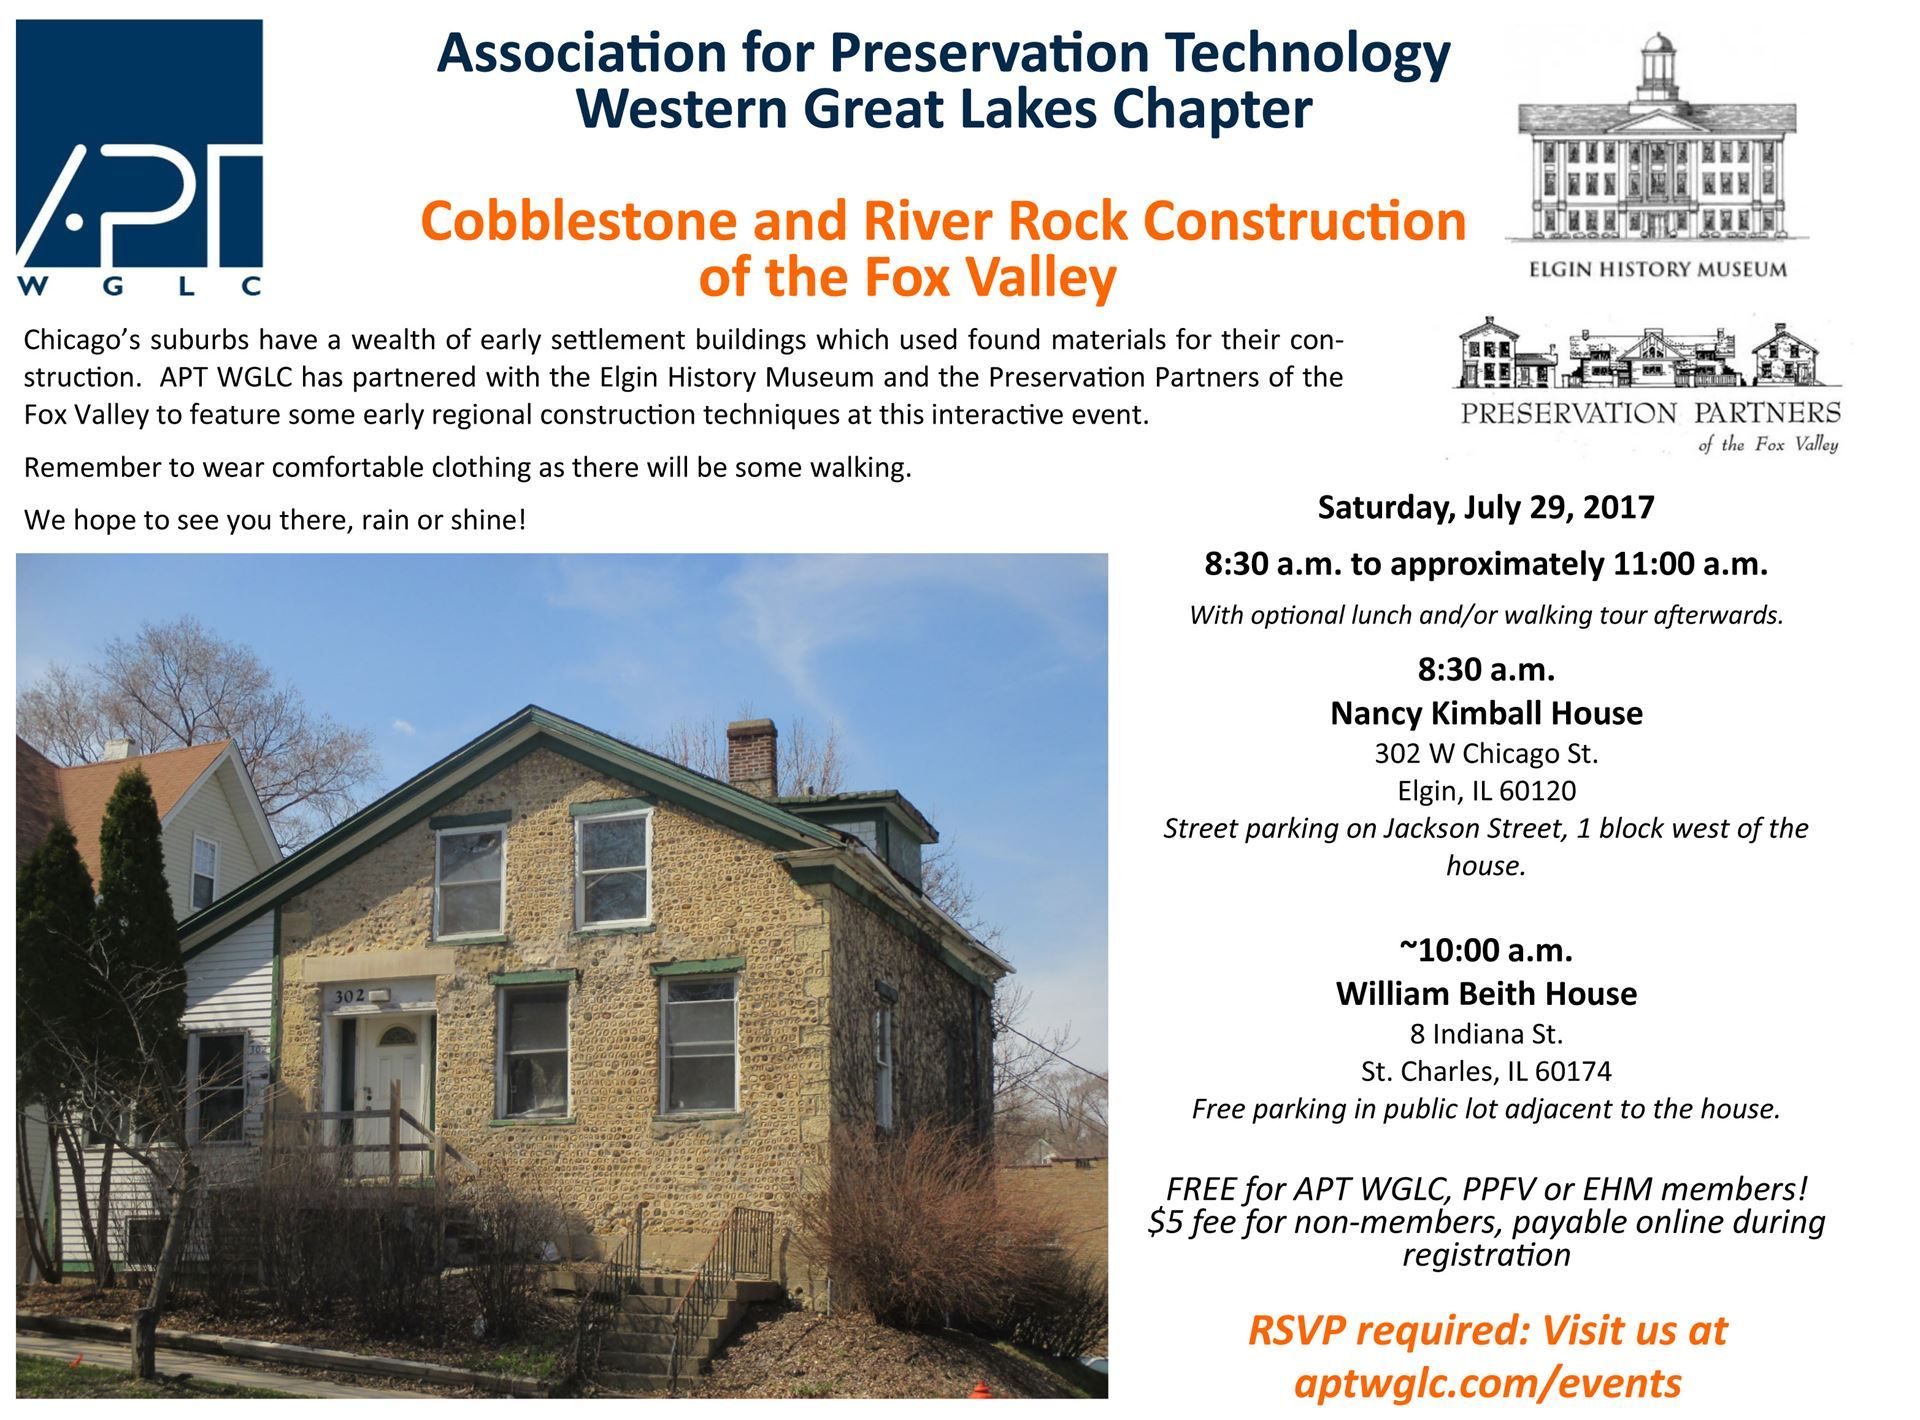 Association for Preservation Technology Western Great Lakes